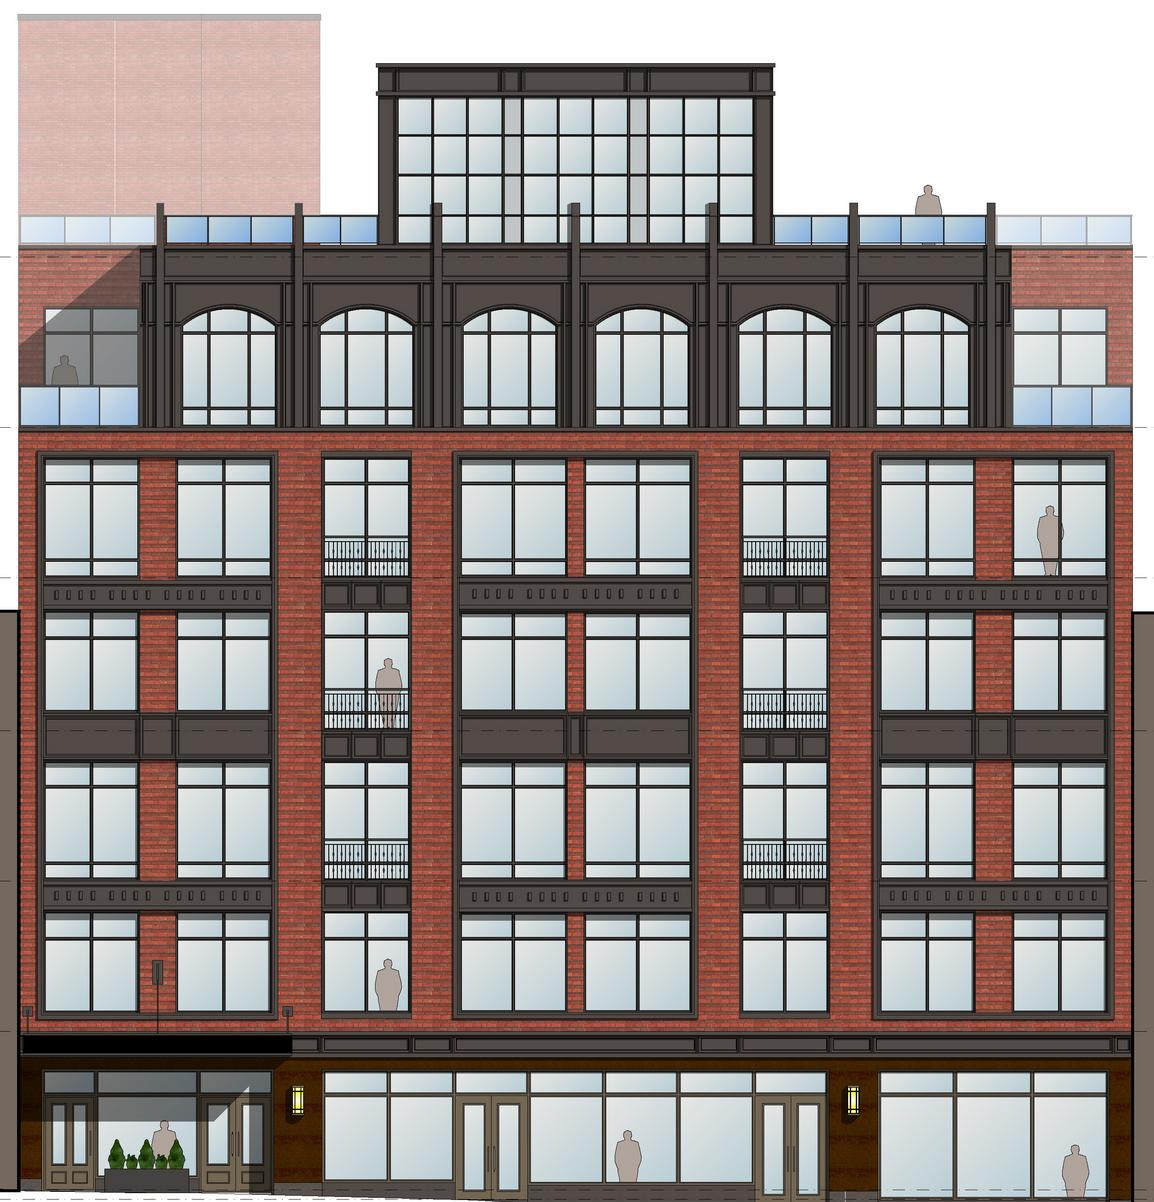 800 Union Street, rendering via Midwood Investment and Development Corp